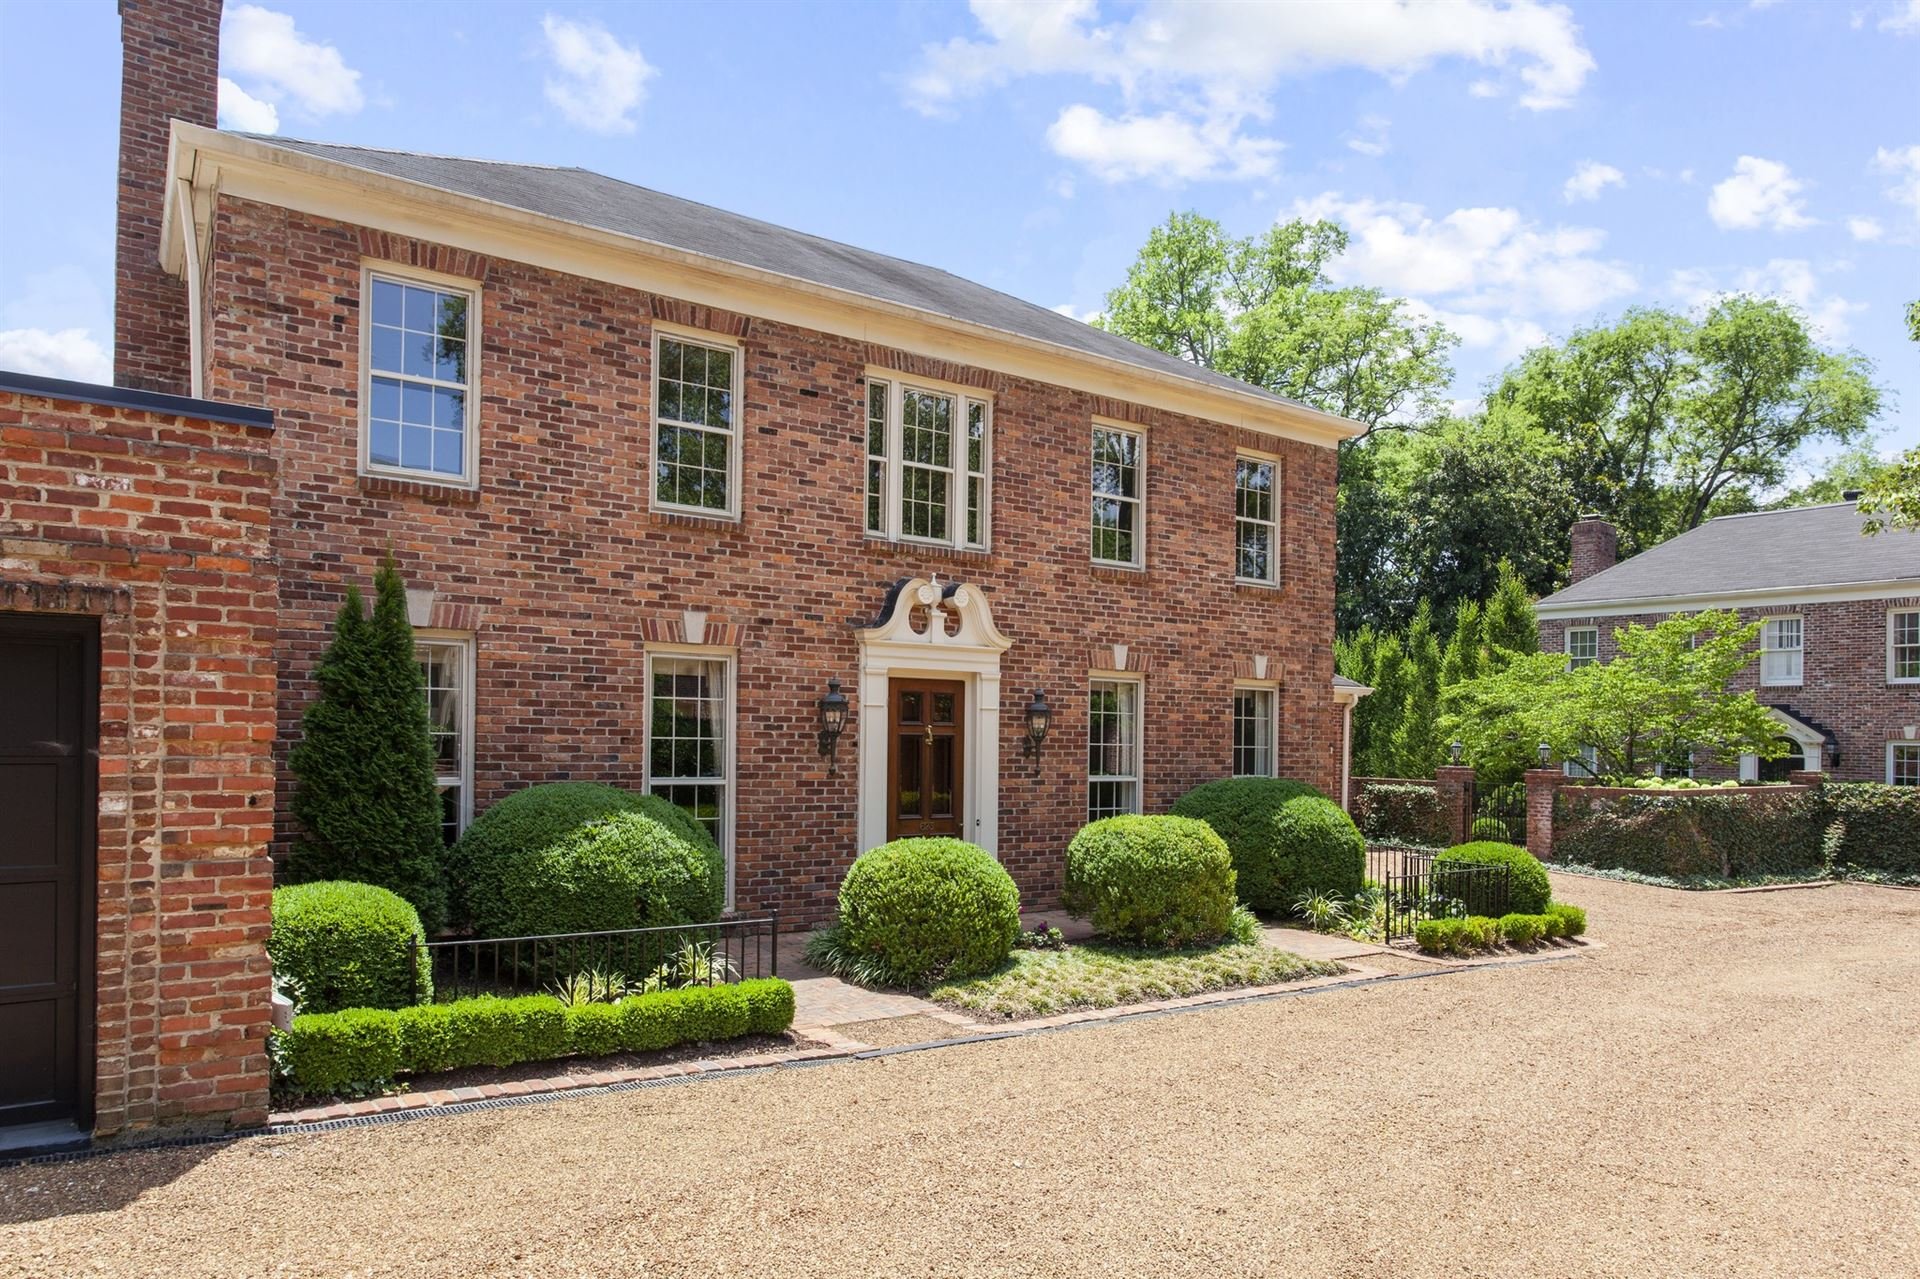 Photo of 623 Woodleigh Dr, Nashville, TN 37215 (MLS # 2274952)